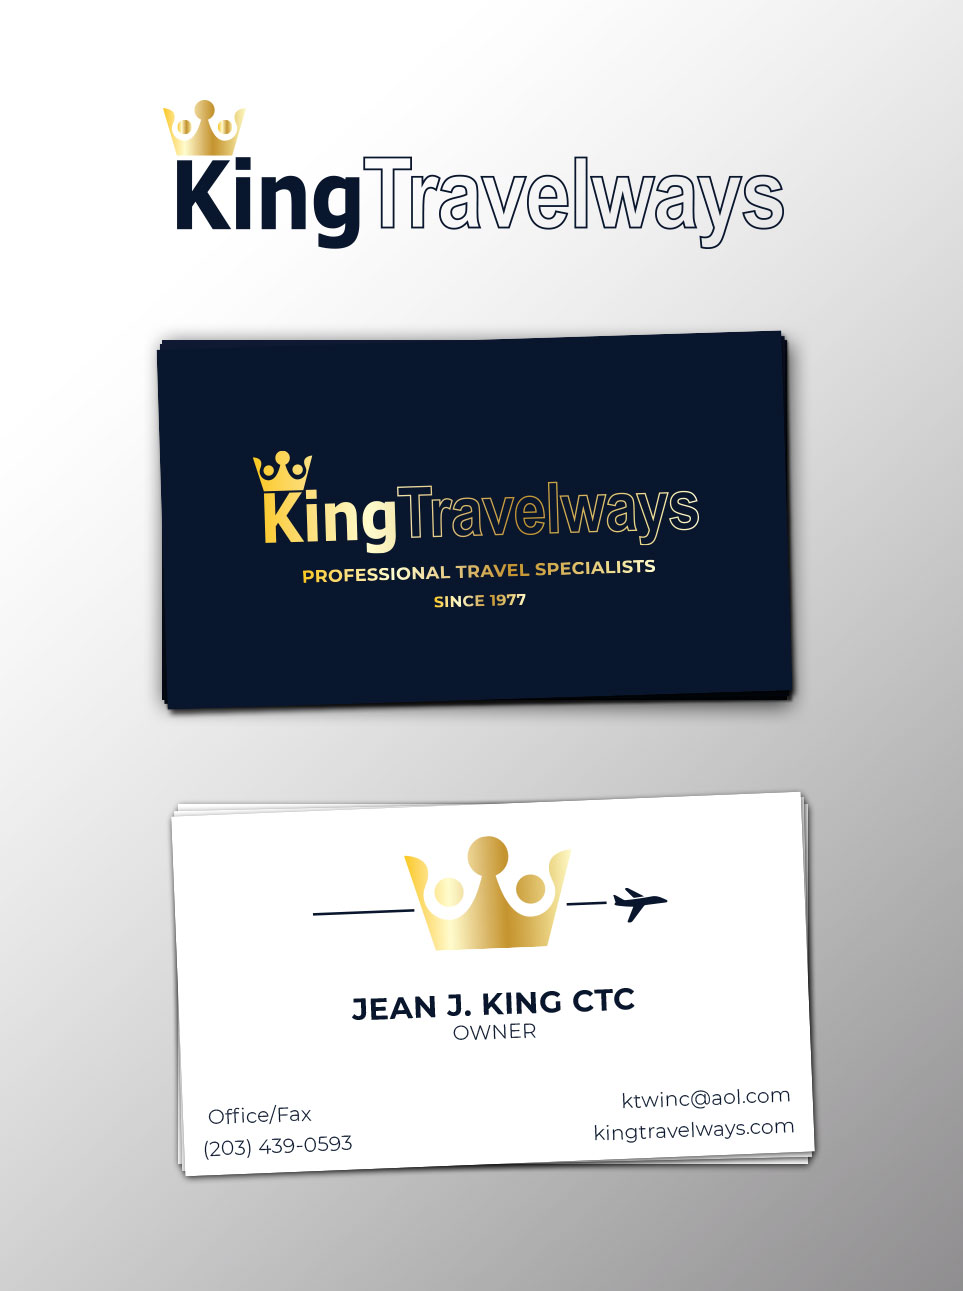 King Travelways Rebrand 2019